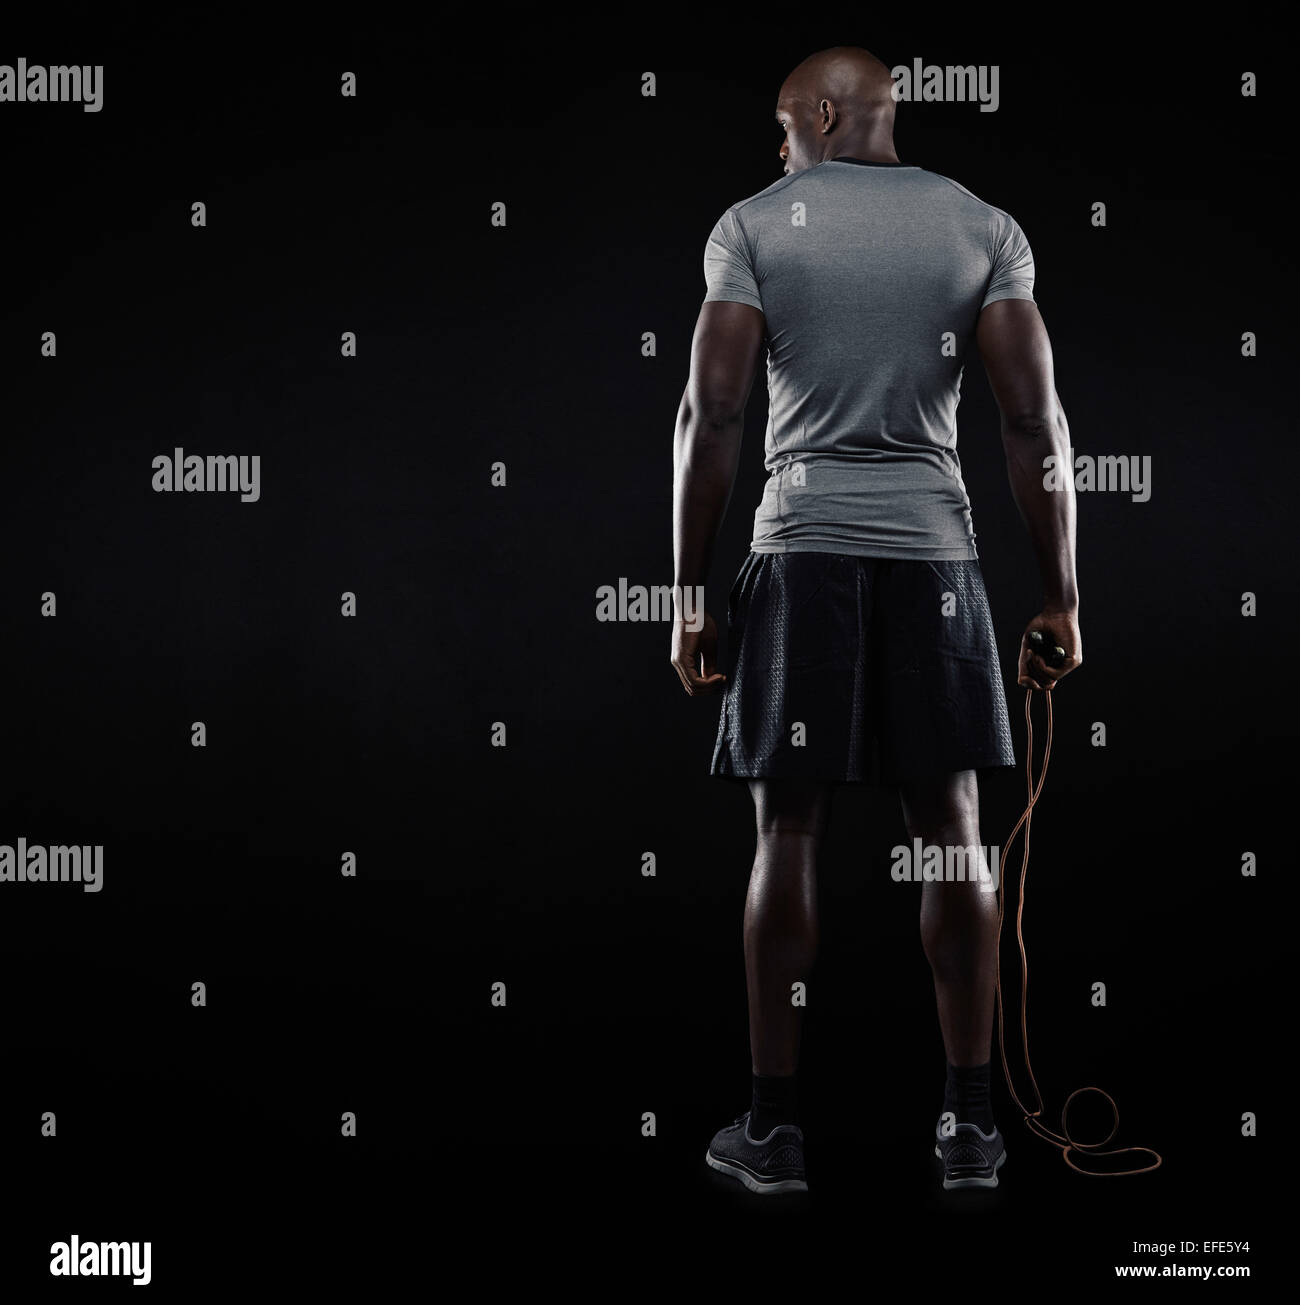 Rear view of muscular man standing with jumping rope on black background. Studio shot of fitness model holding skipping - Stock Image